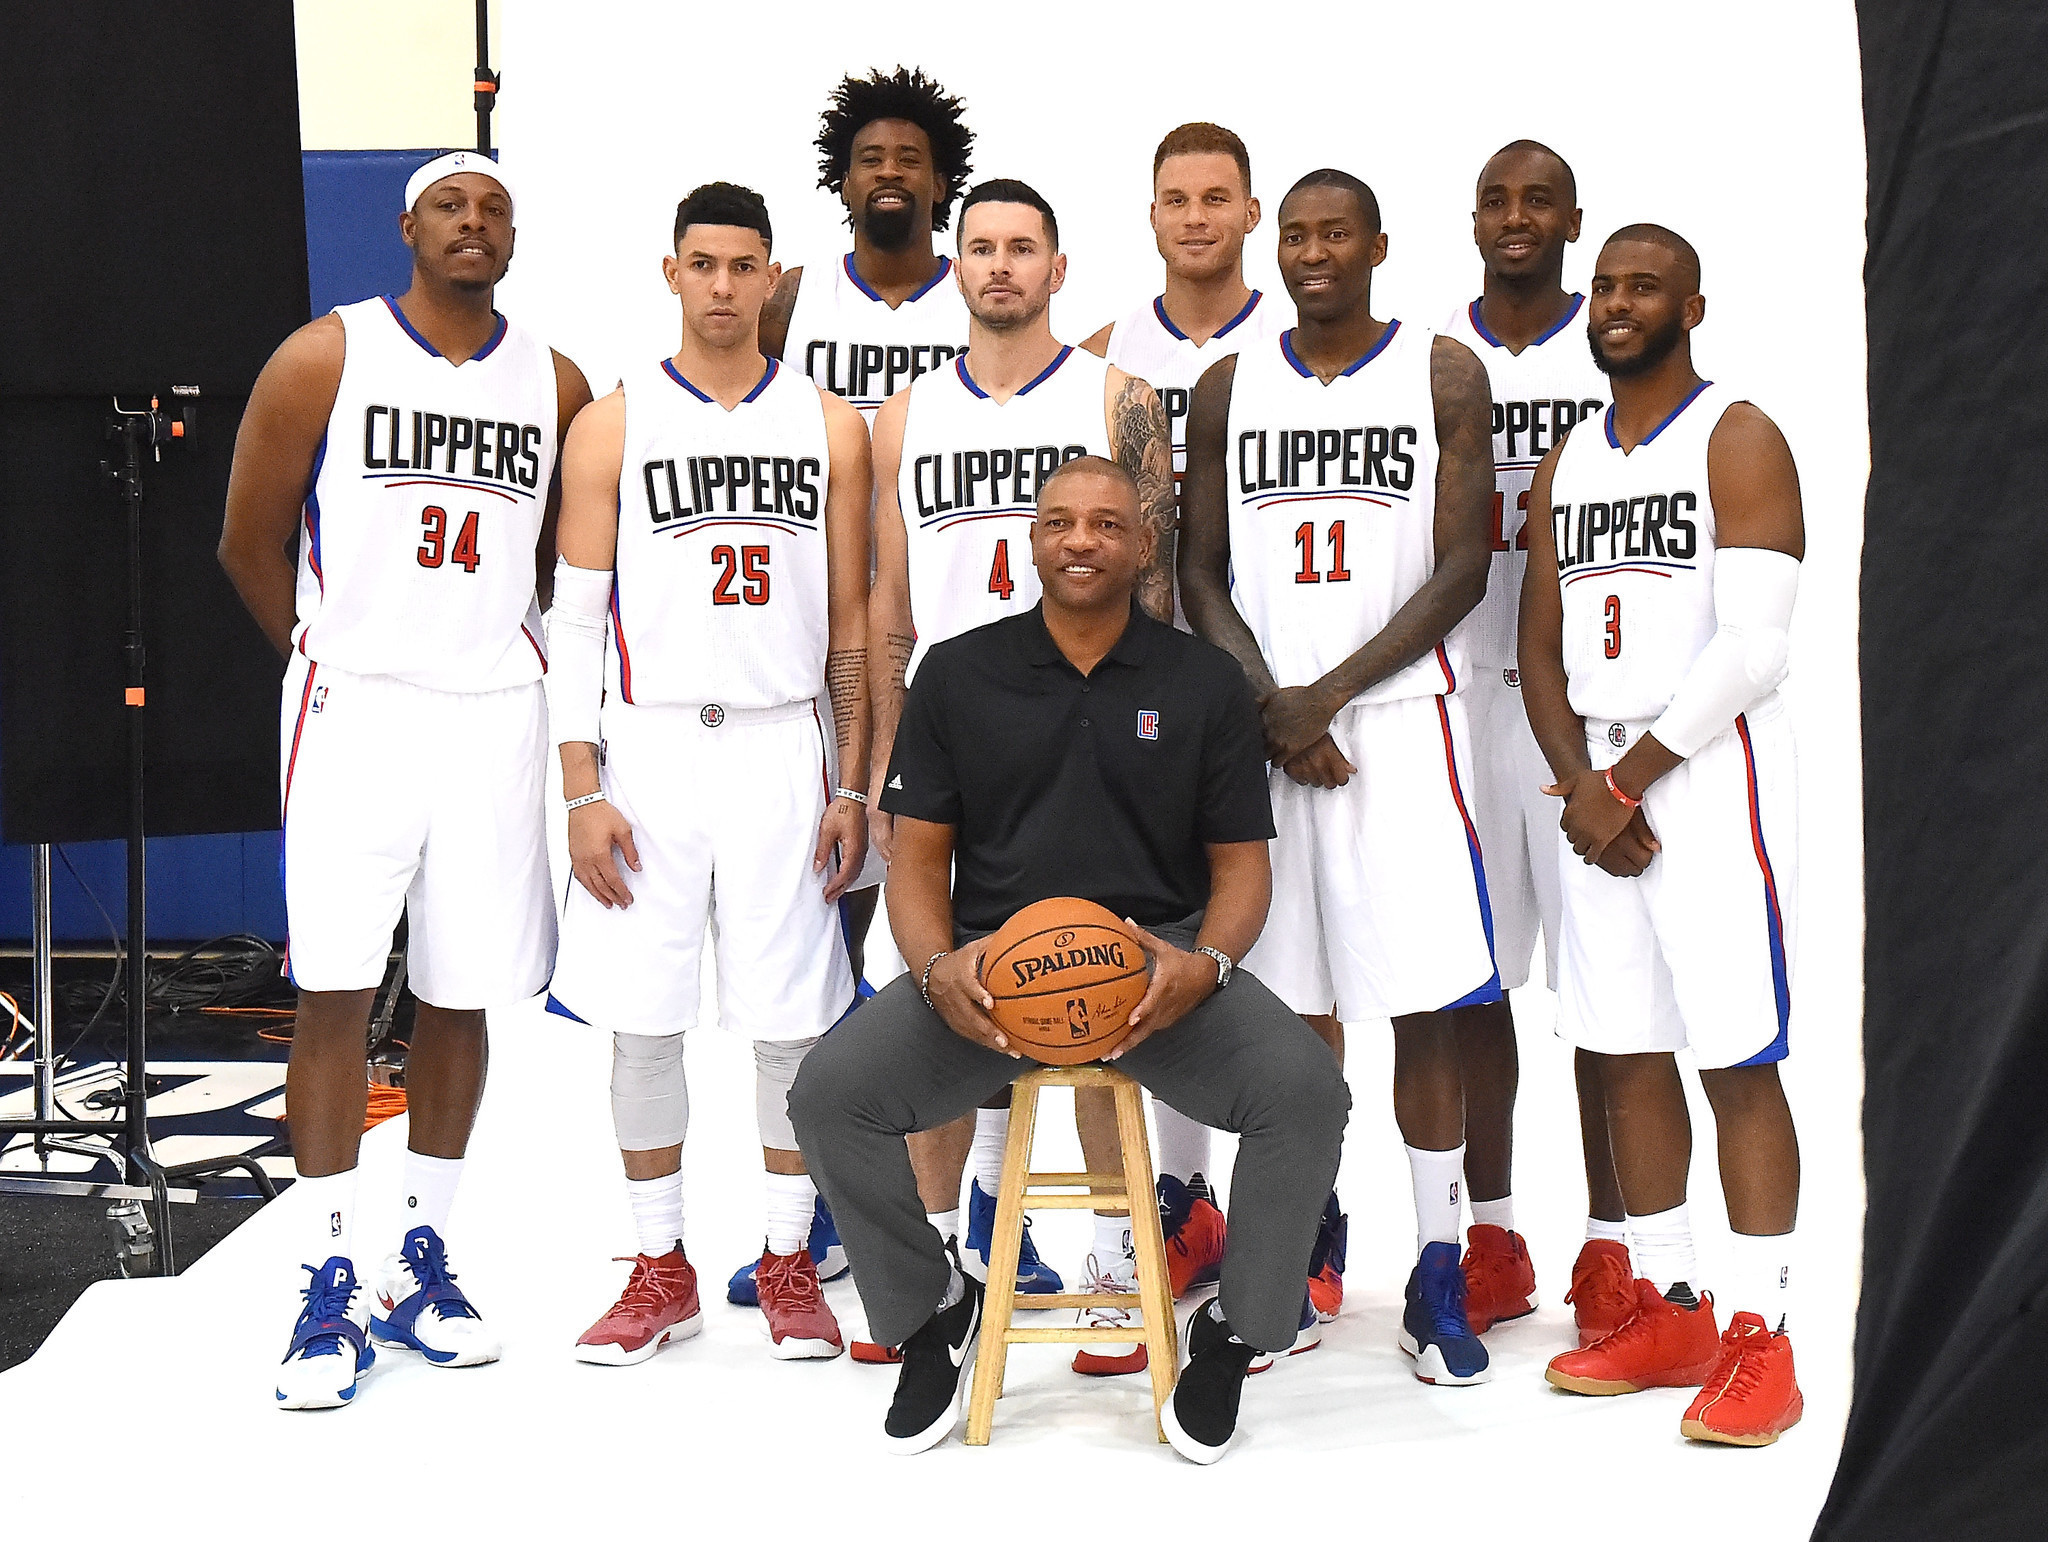 La-sp-clippers-roster-20161019-snap